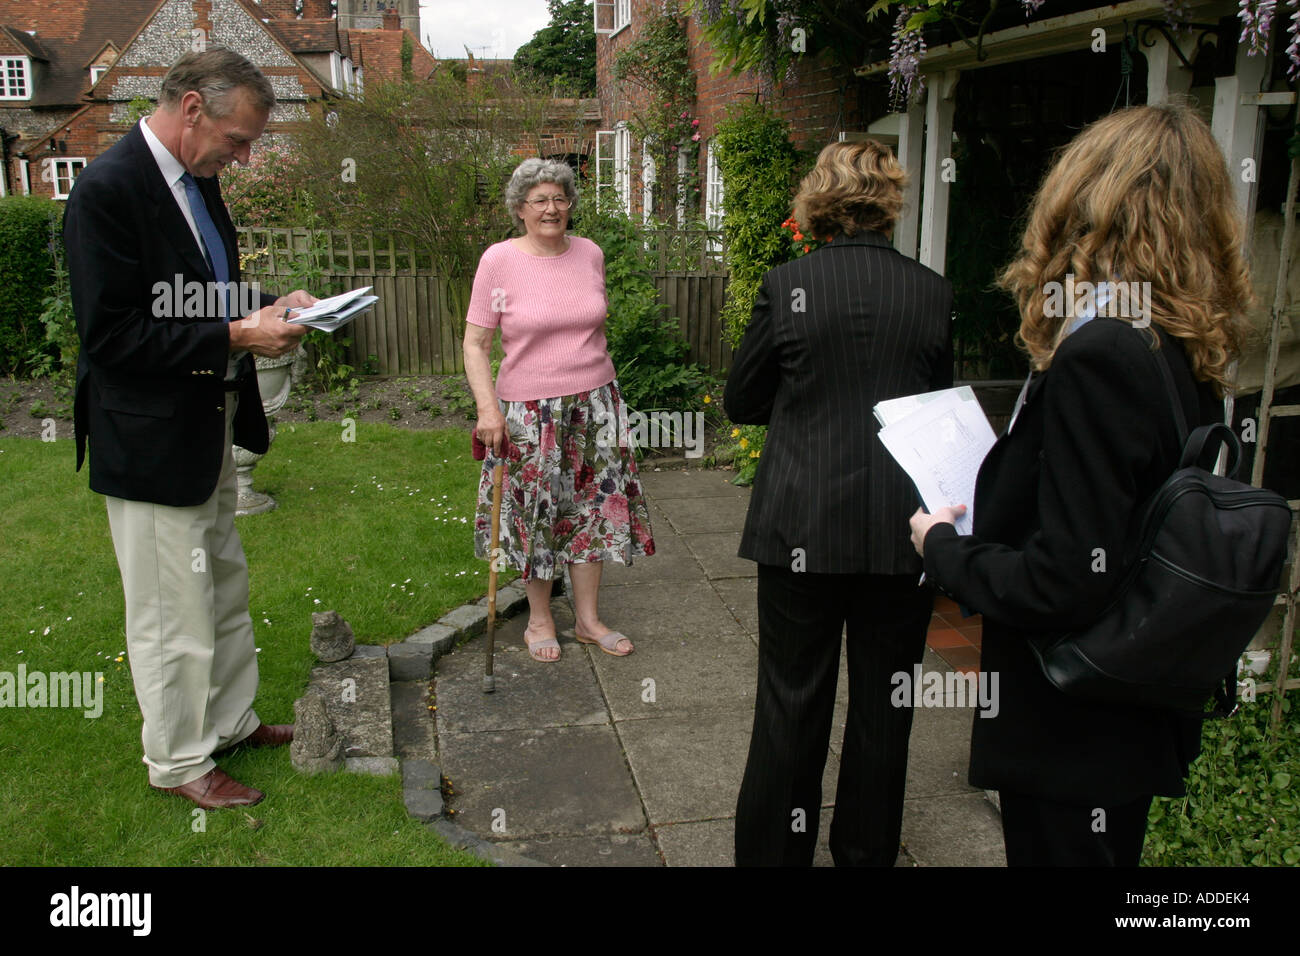 Estate agents show a viewer representing an un-named potential buyer (left) some of the properties of Hambleden village - Stock Image